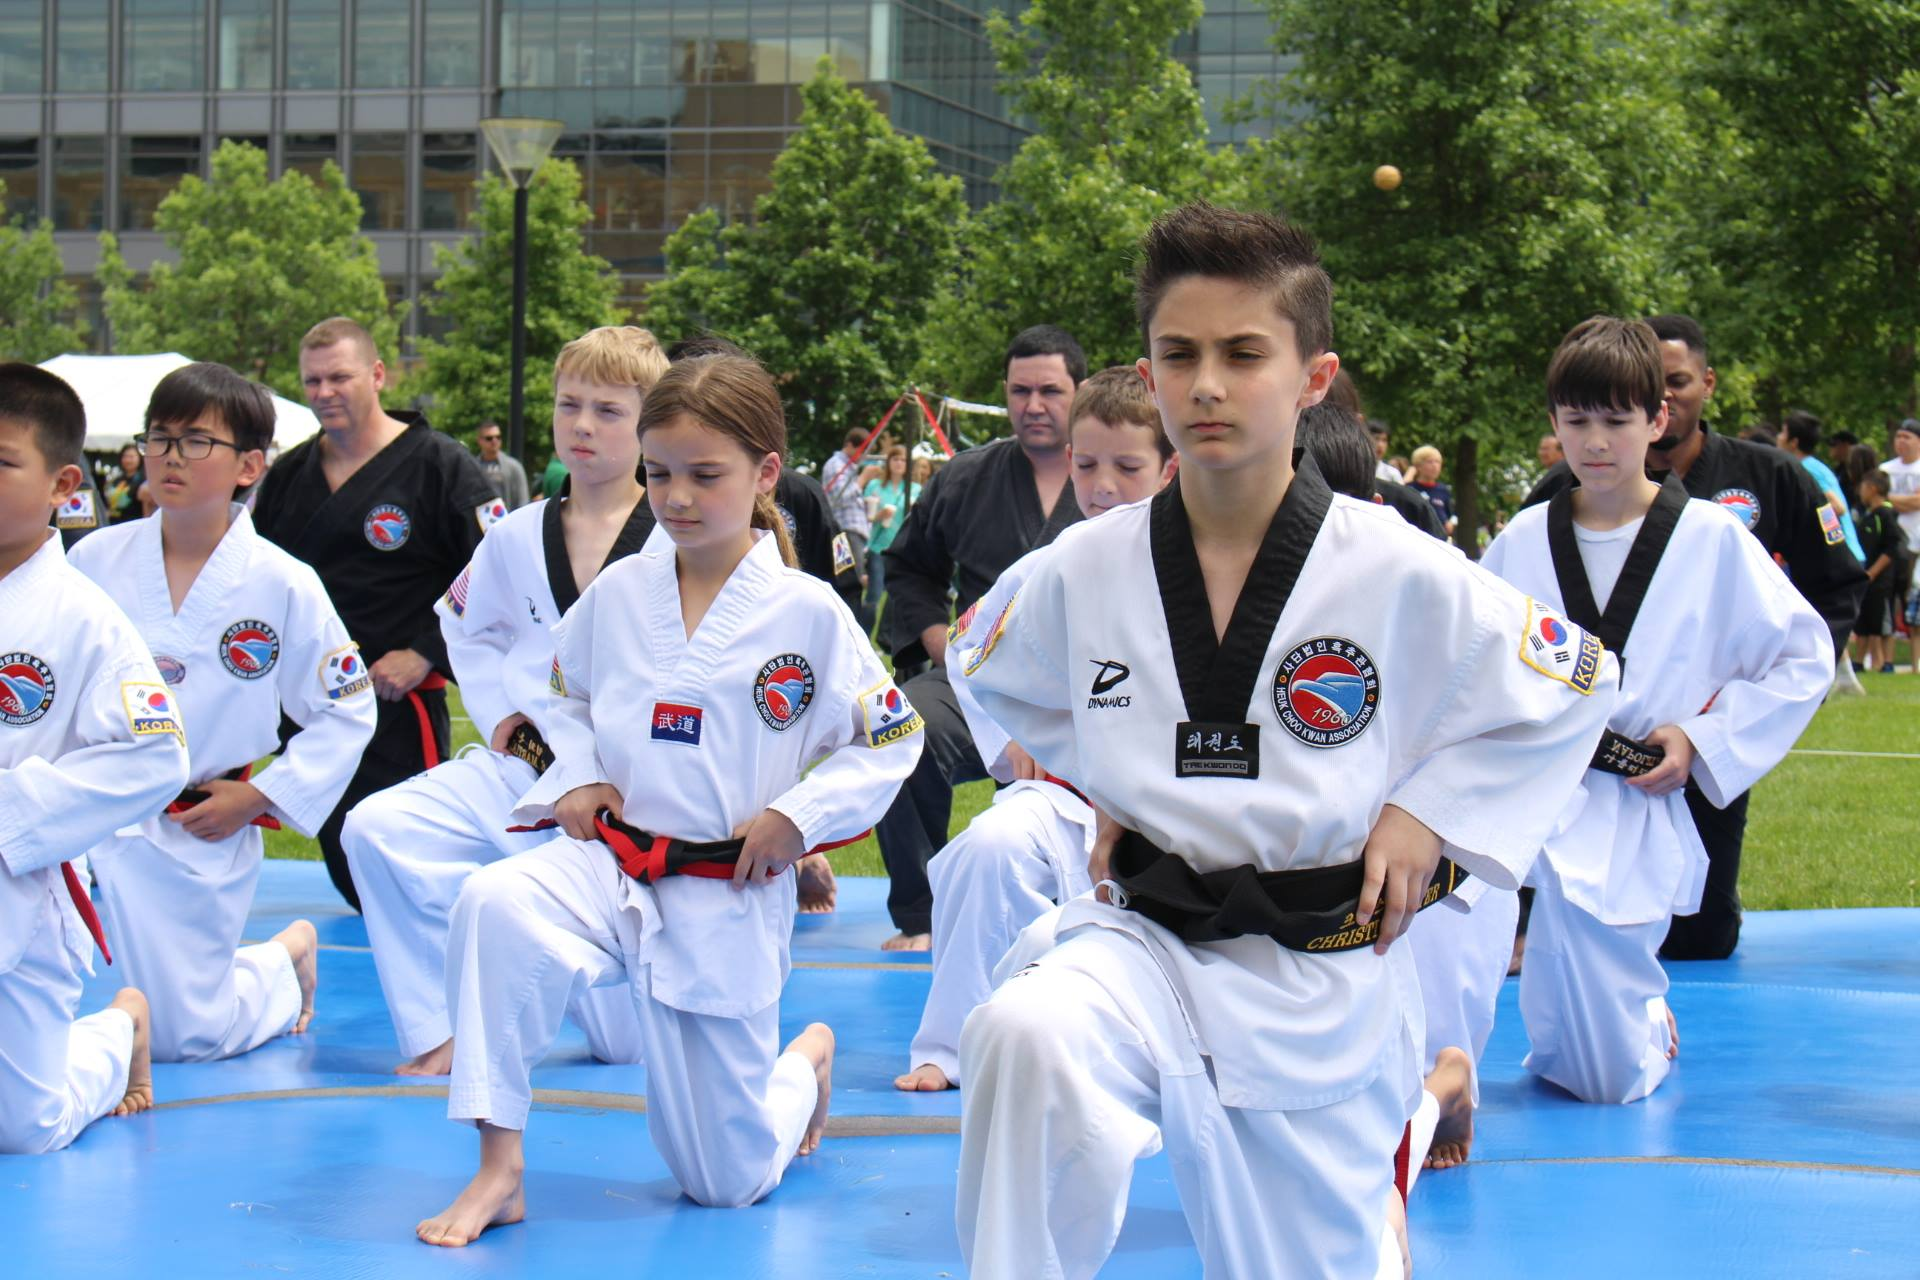 Family-friendly Traditional Martial Arts